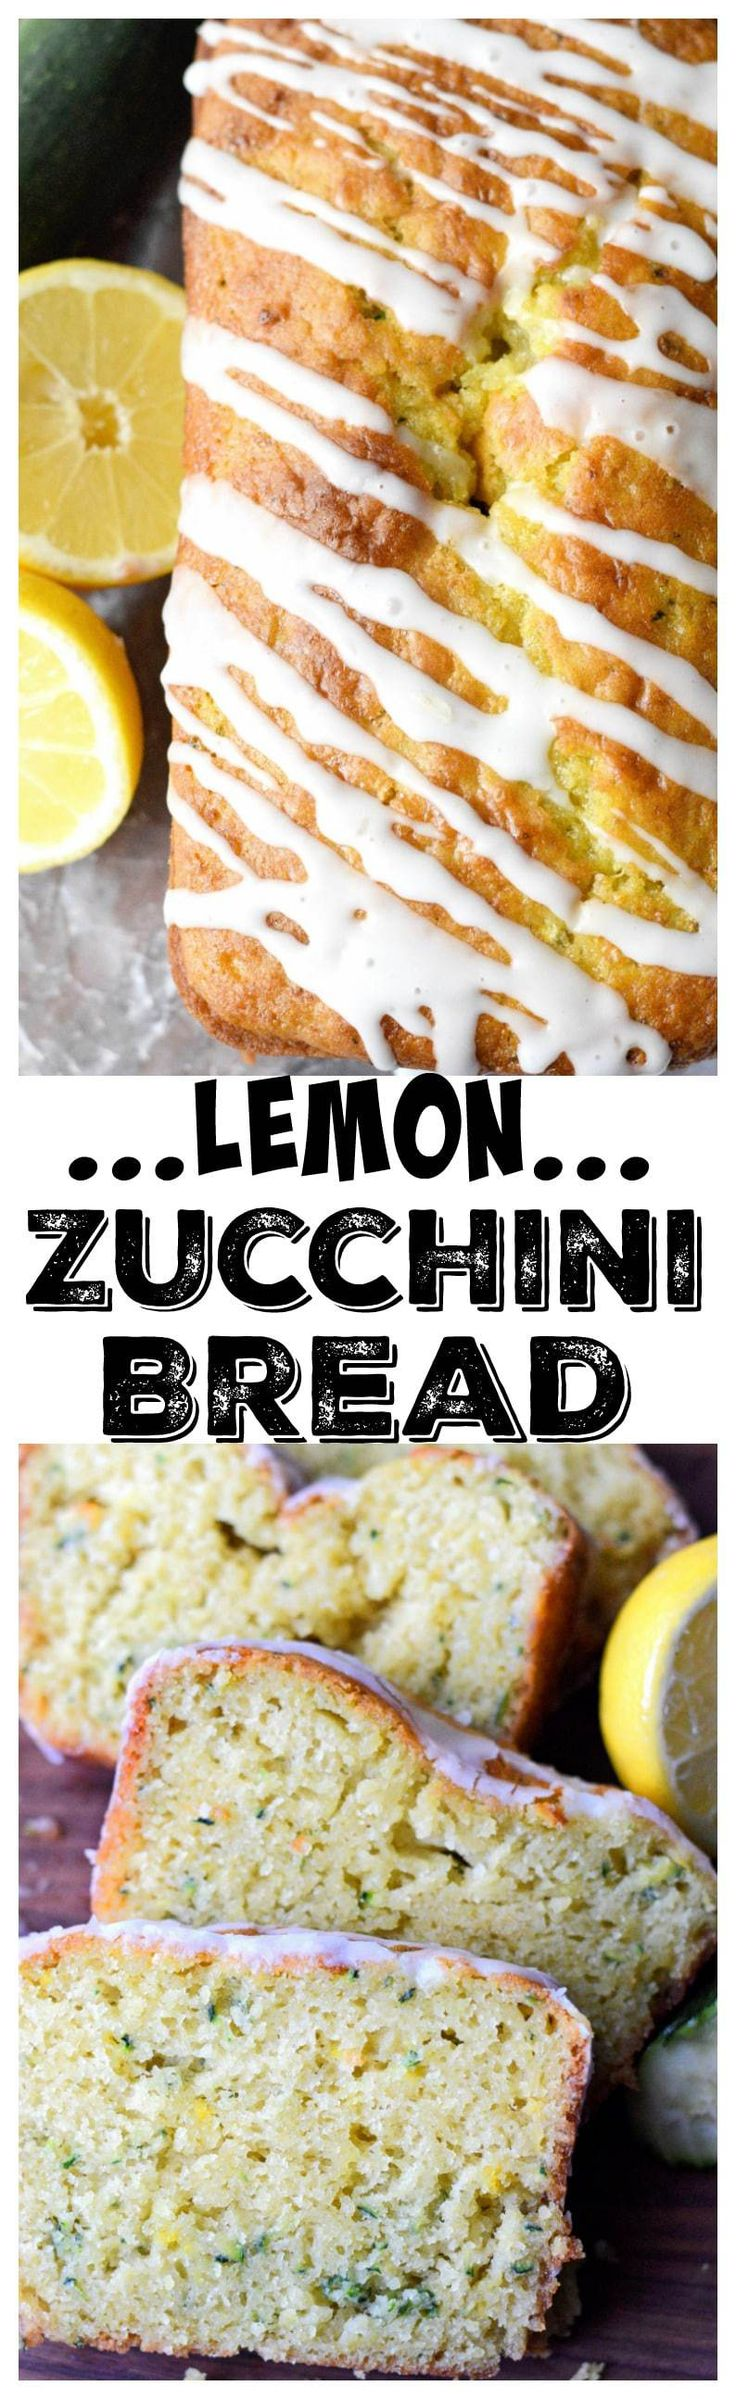 Lemon Zucchini Bread recipe is a glorious combination, super moist, lemony and delicious! Then topped with a sweet lemon drizzle, a perfect Summer recipe.